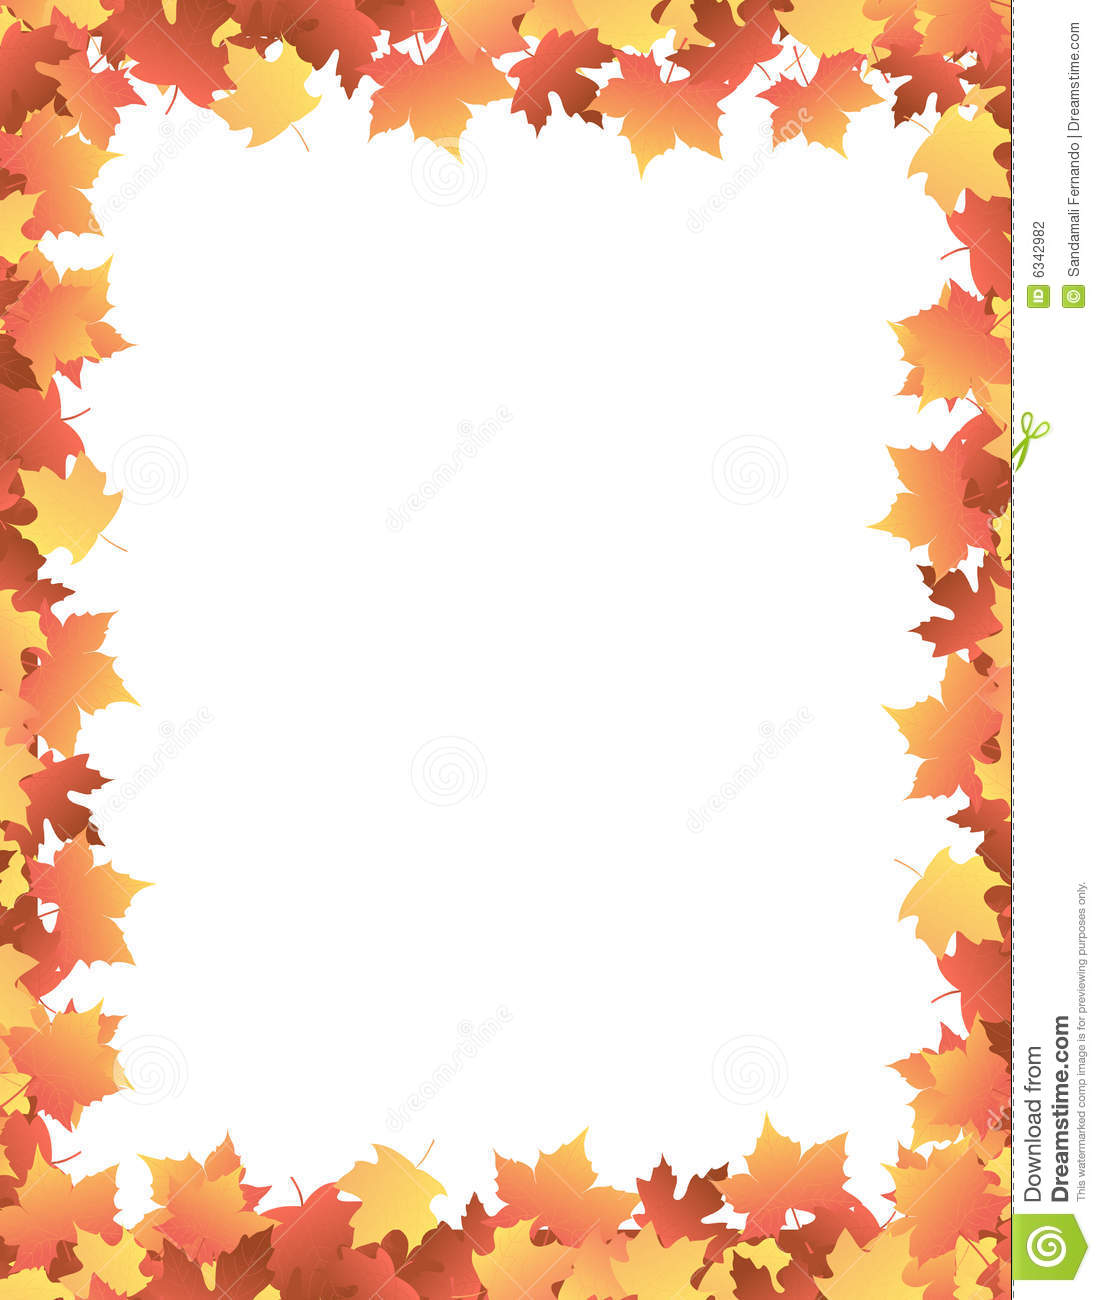 Clip Art Leaf Border Clip Art maple leaf border clipart kid fall leaves clip art recipe 101